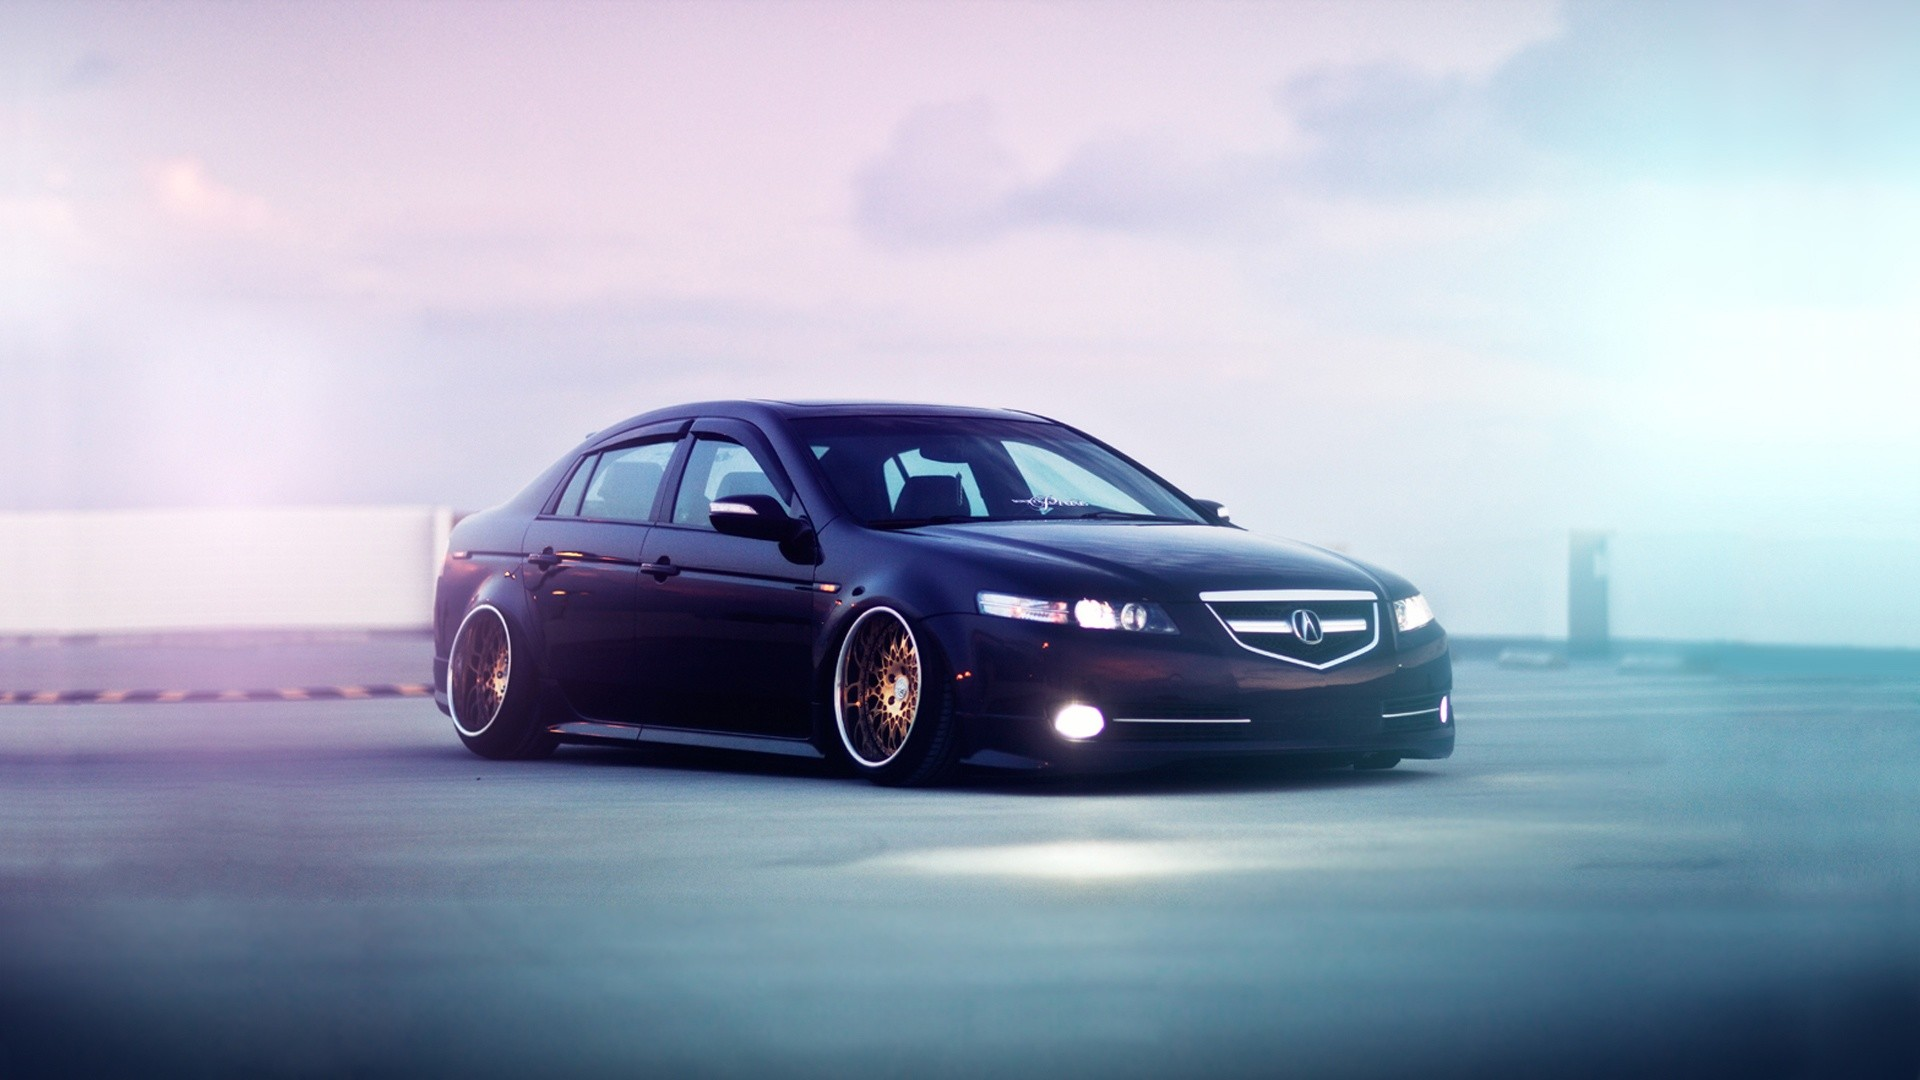 Res: 1920x1080, Acura TL Stance